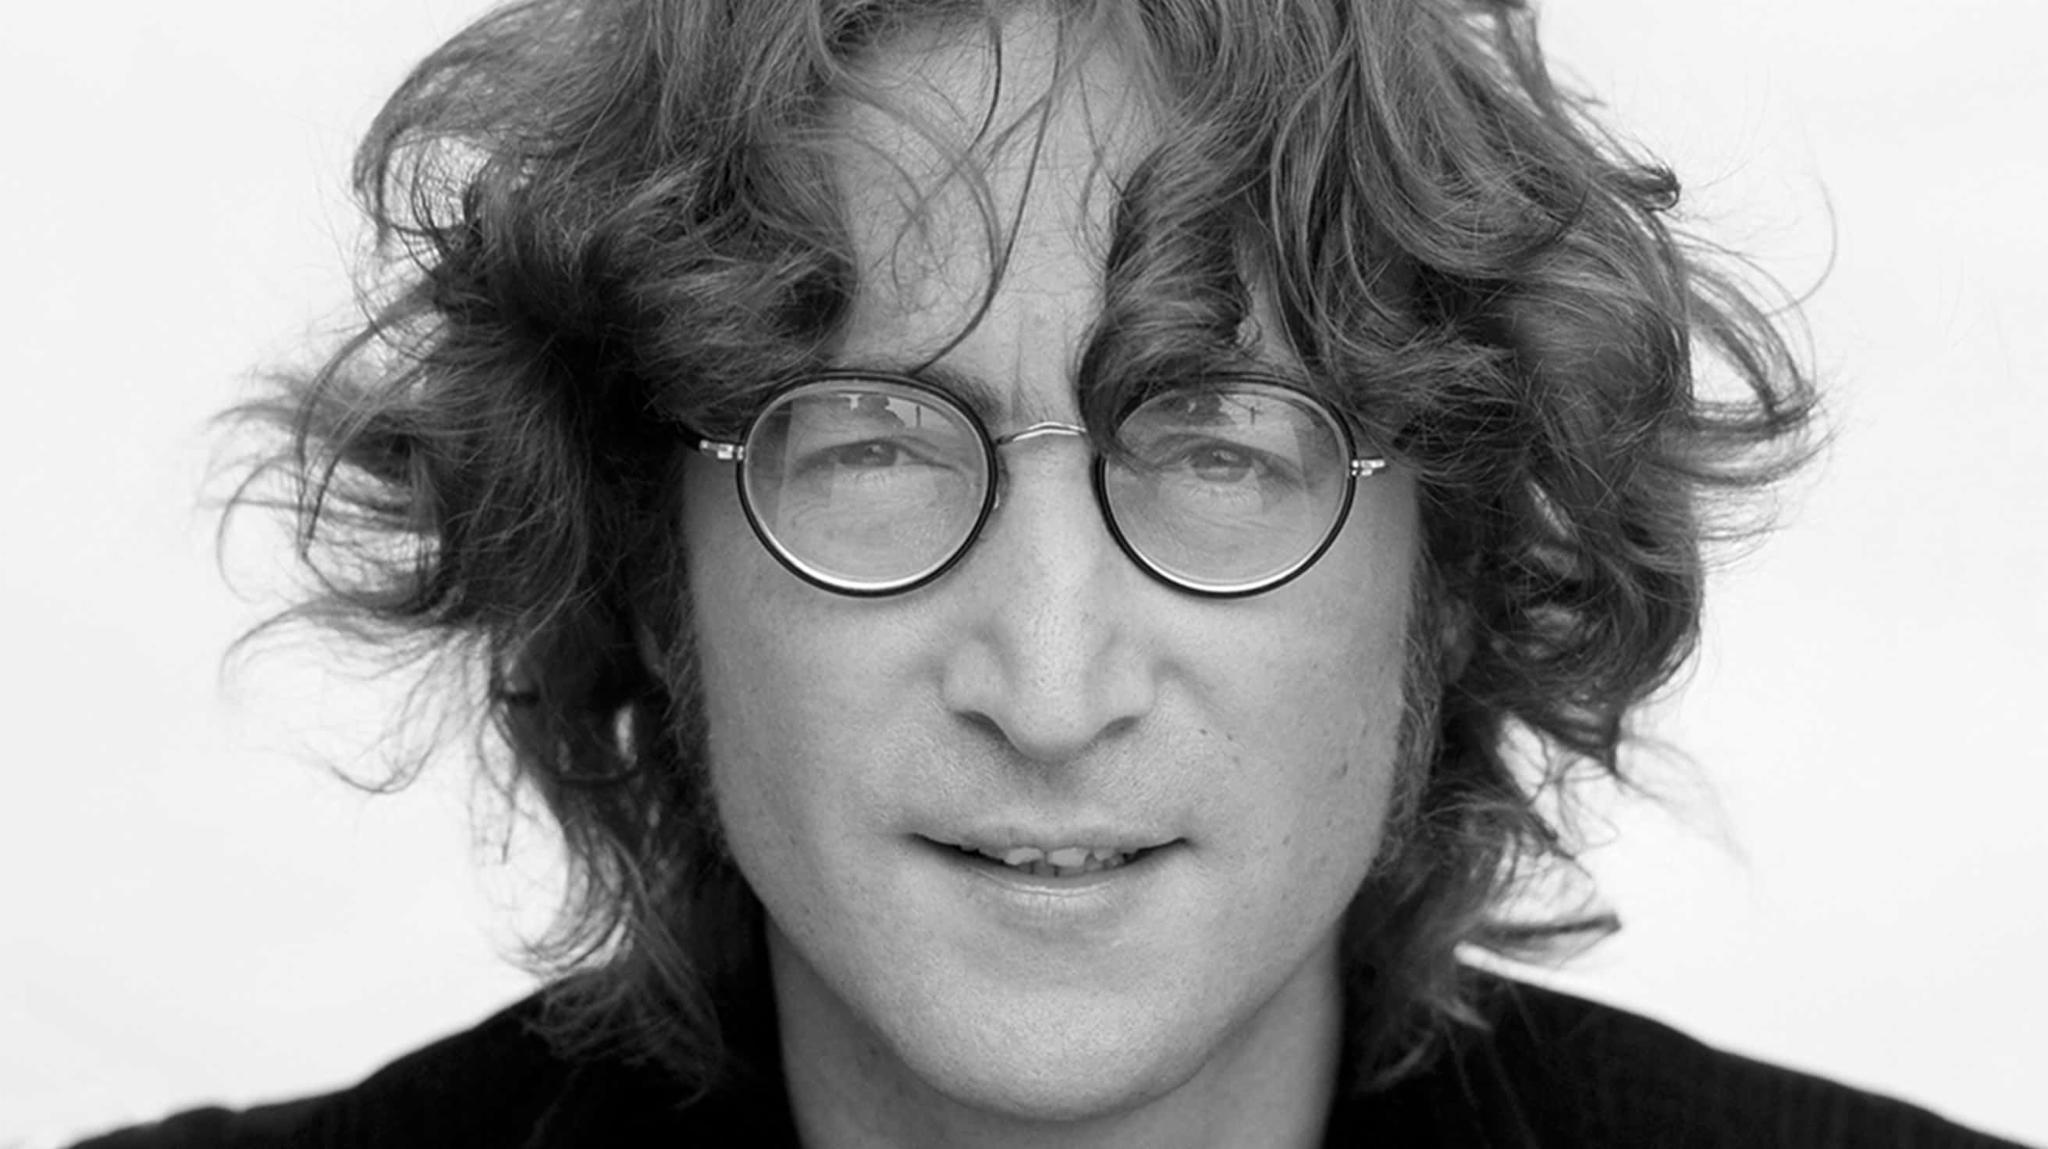 What do you think life would be like if John Lennon was still alive?